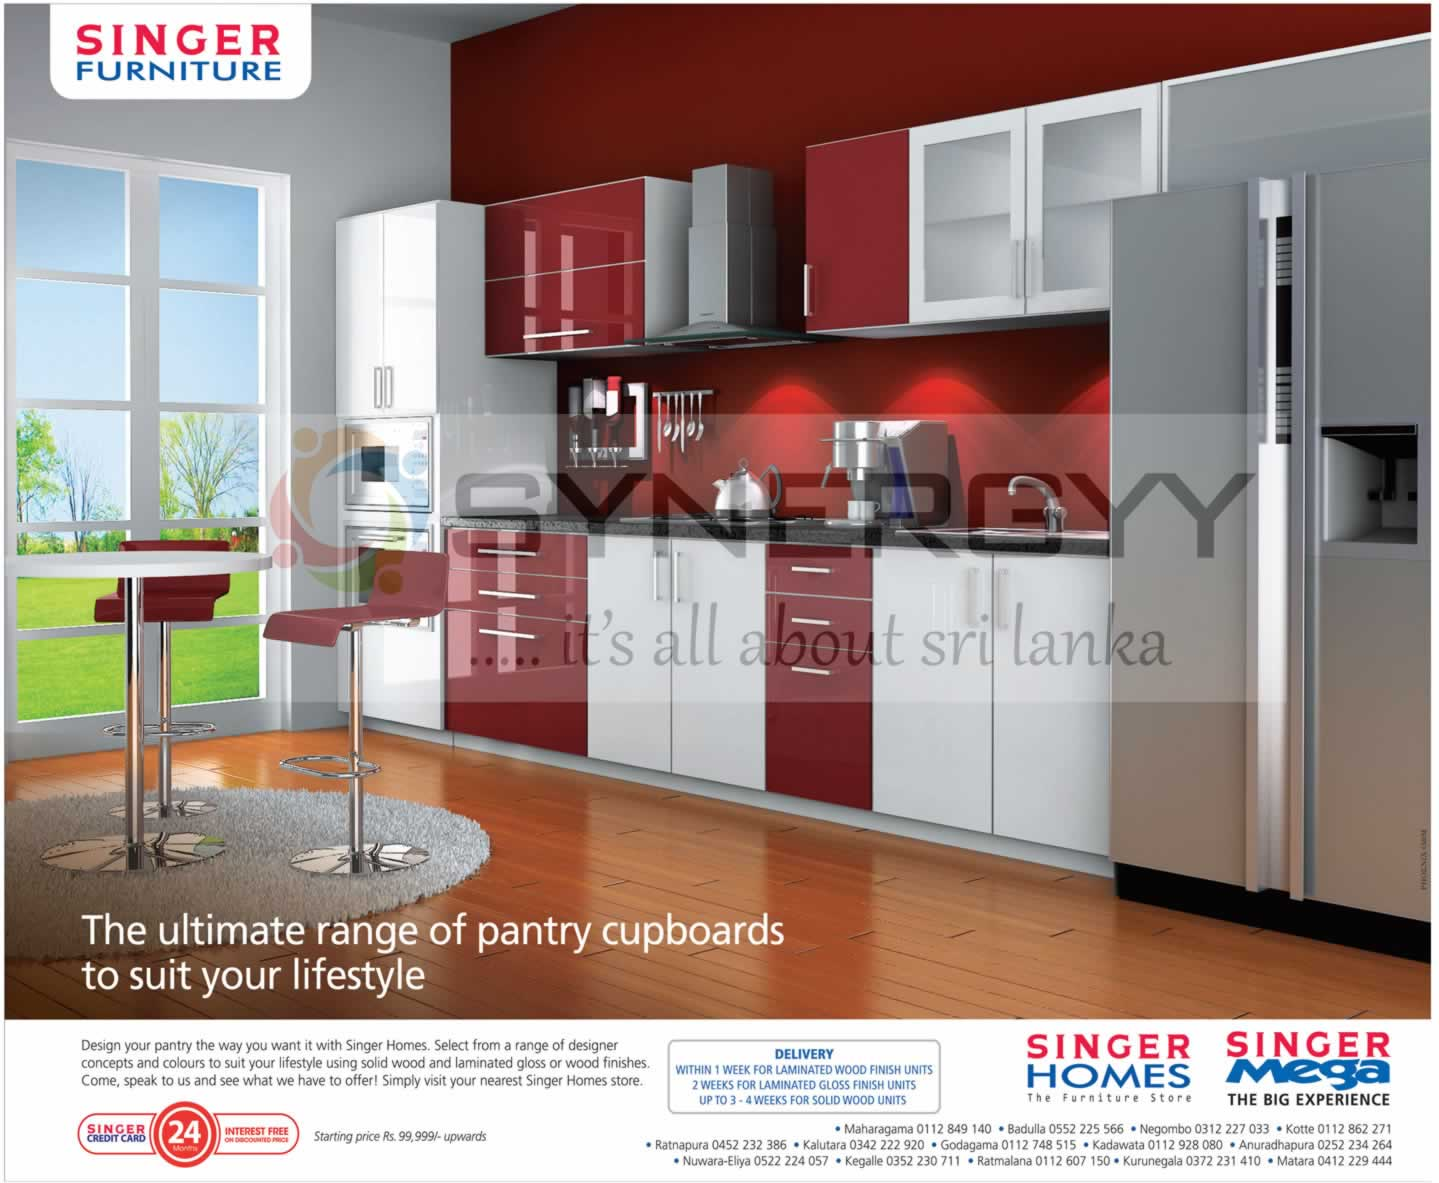 Pantry Cupboards From Singer Furniture  Price Starting From Rs.99,999